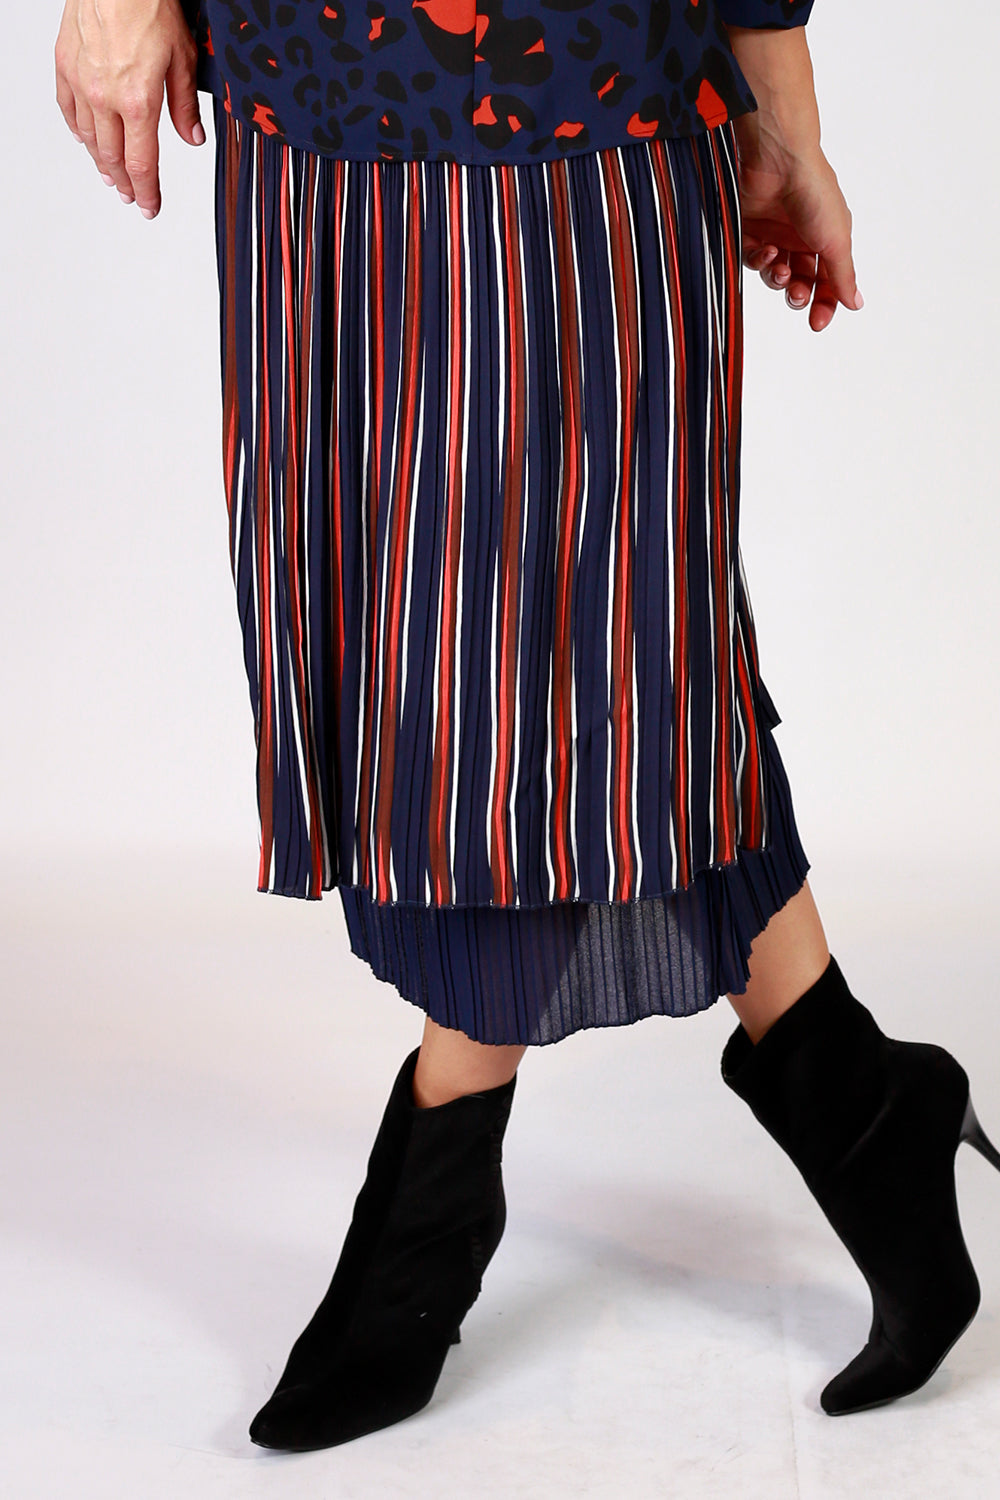 Viva Violet Skirt | Gypsy Fare AW20 | Annah Stretton | Annah Stretton Fashion | Designer Fashion | Navy Skirt | Stripe Skirt | Pleat Skirt | Midi Skirt | Annah Stretton NZ | Designer Fashion NZ